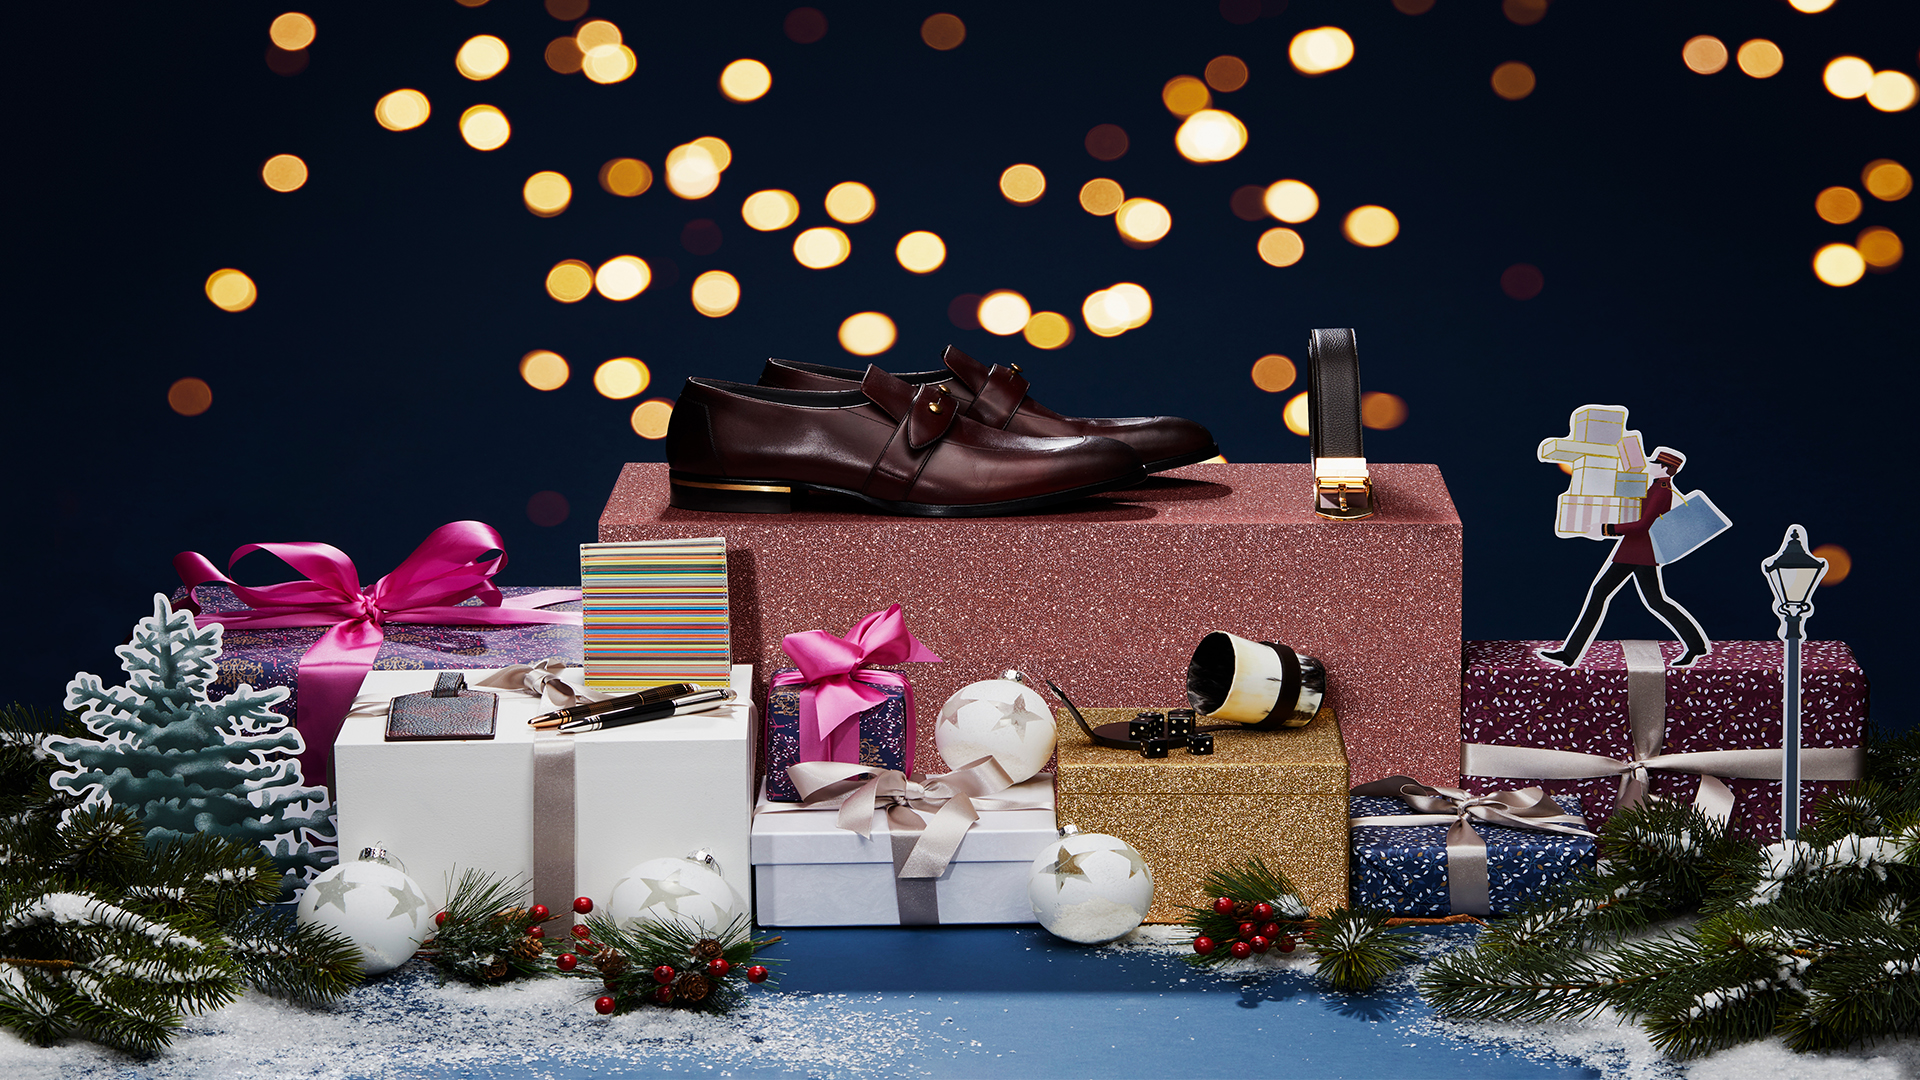 Kildare-village-men's-gift-guide